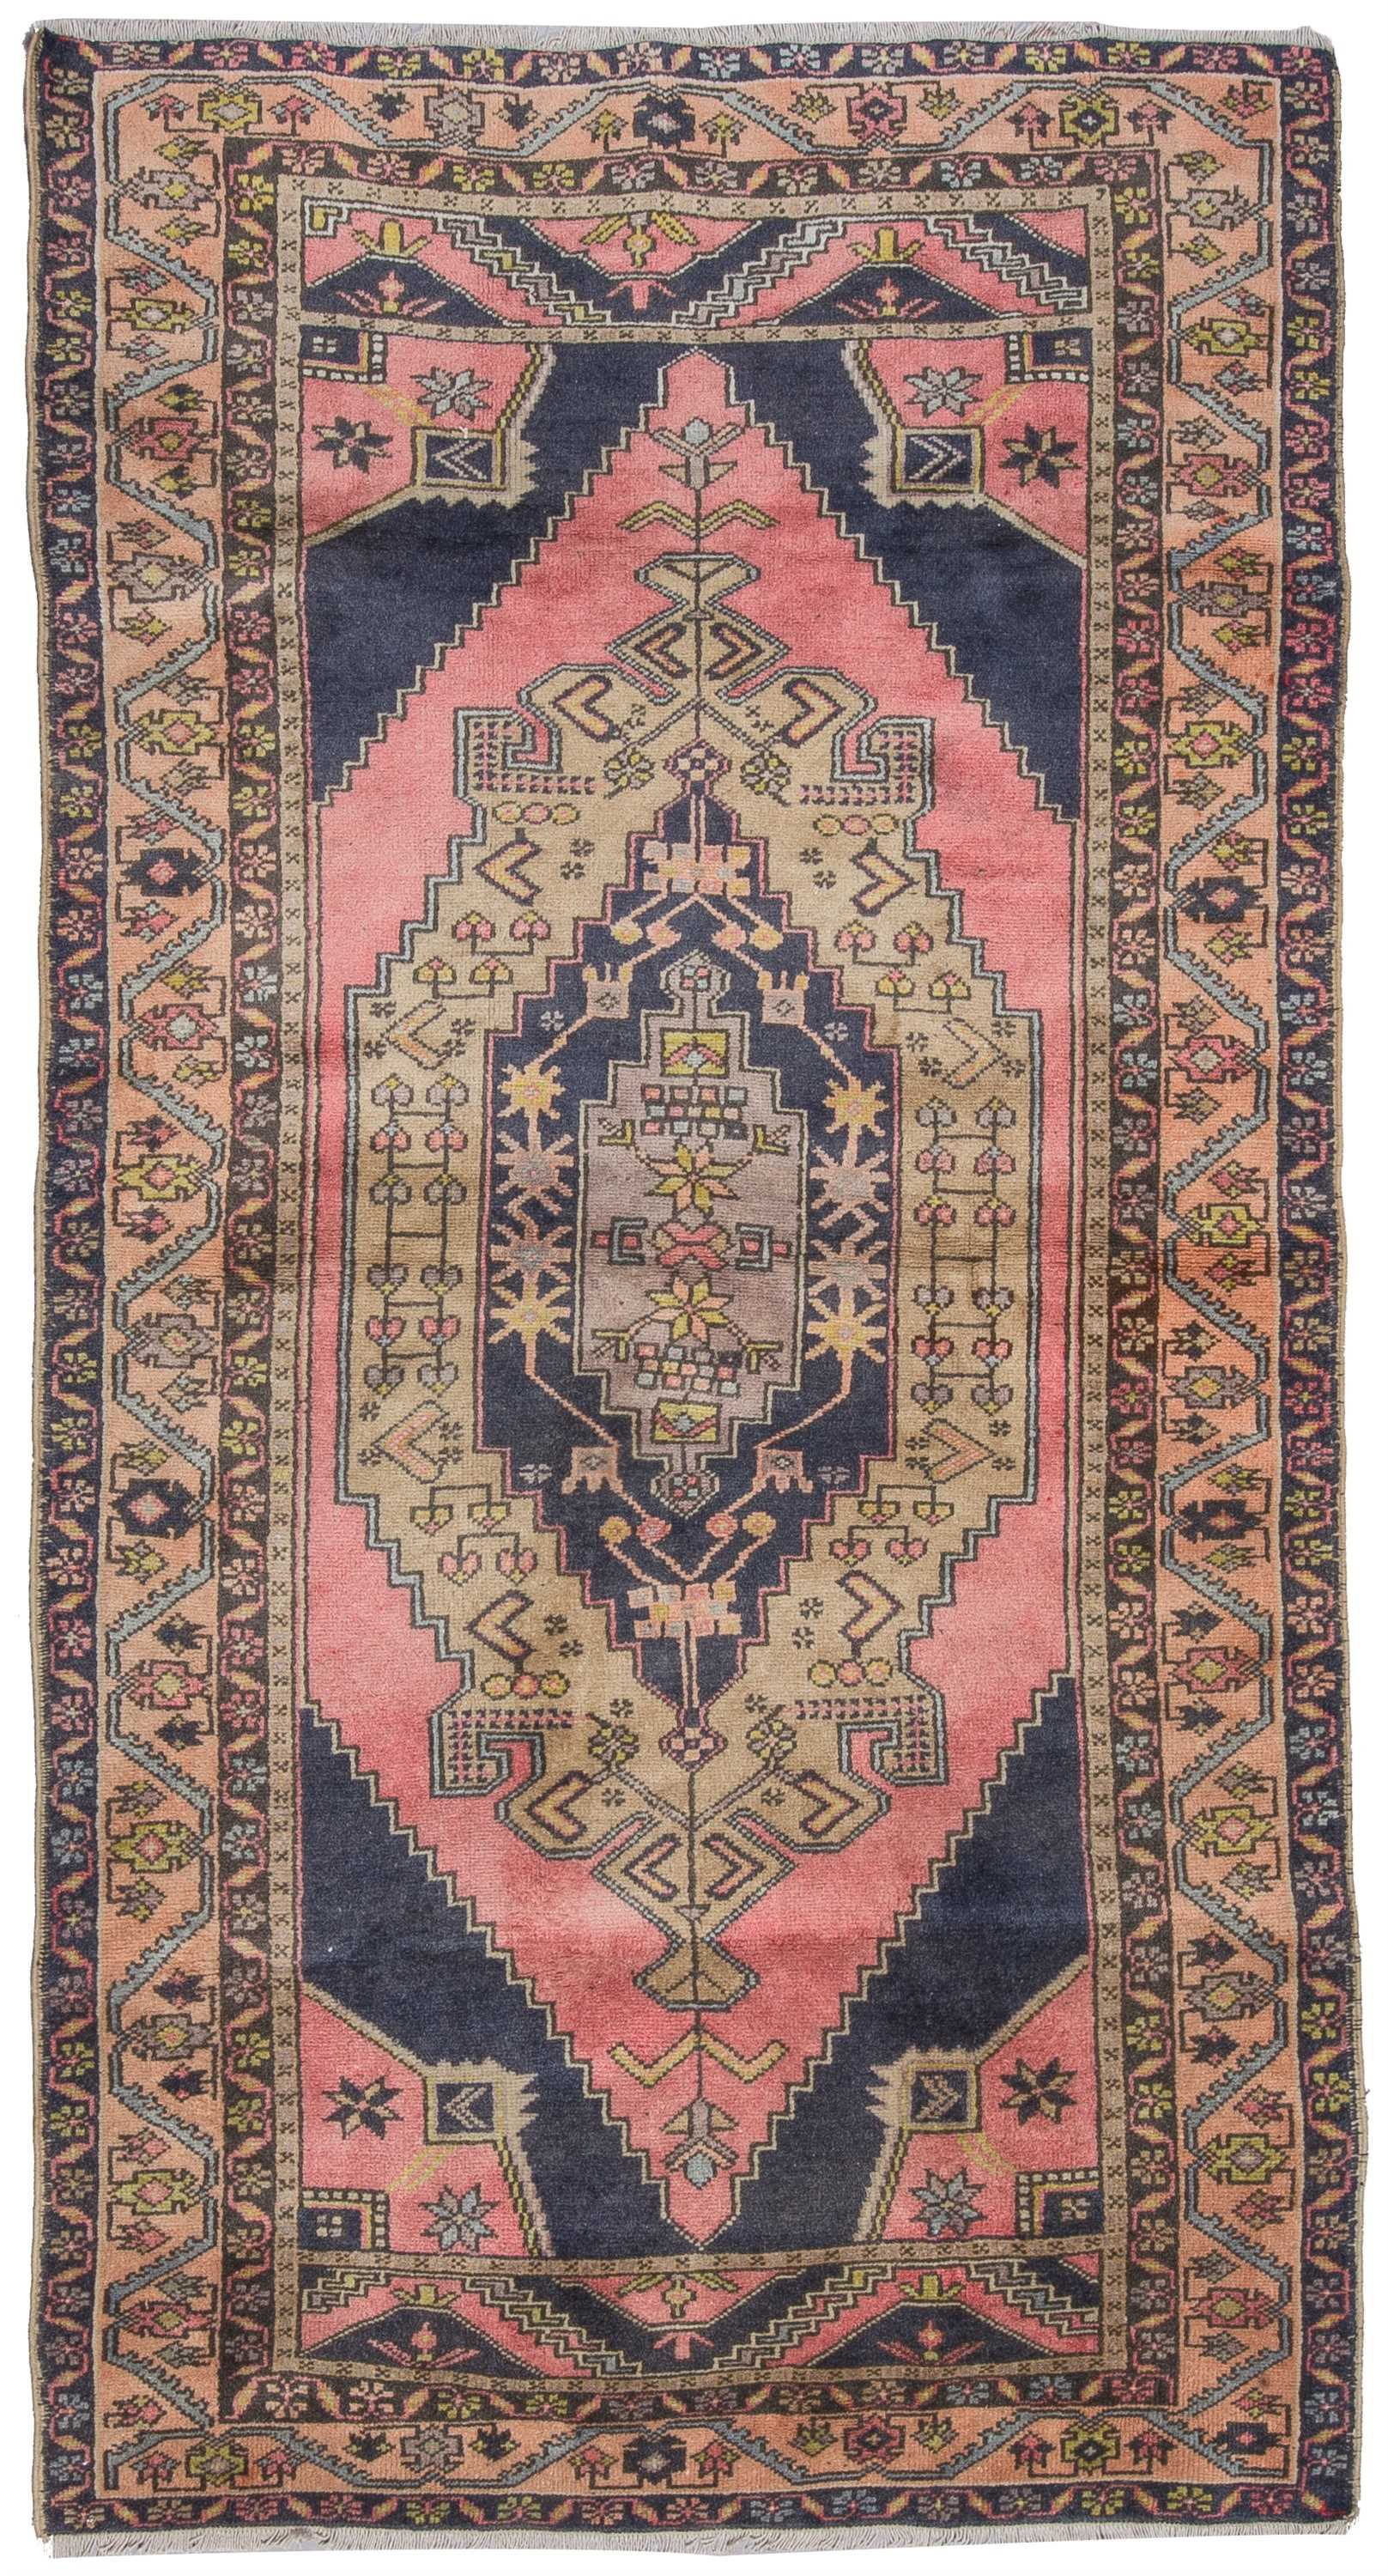 Vintage Turkish Rug - 0839